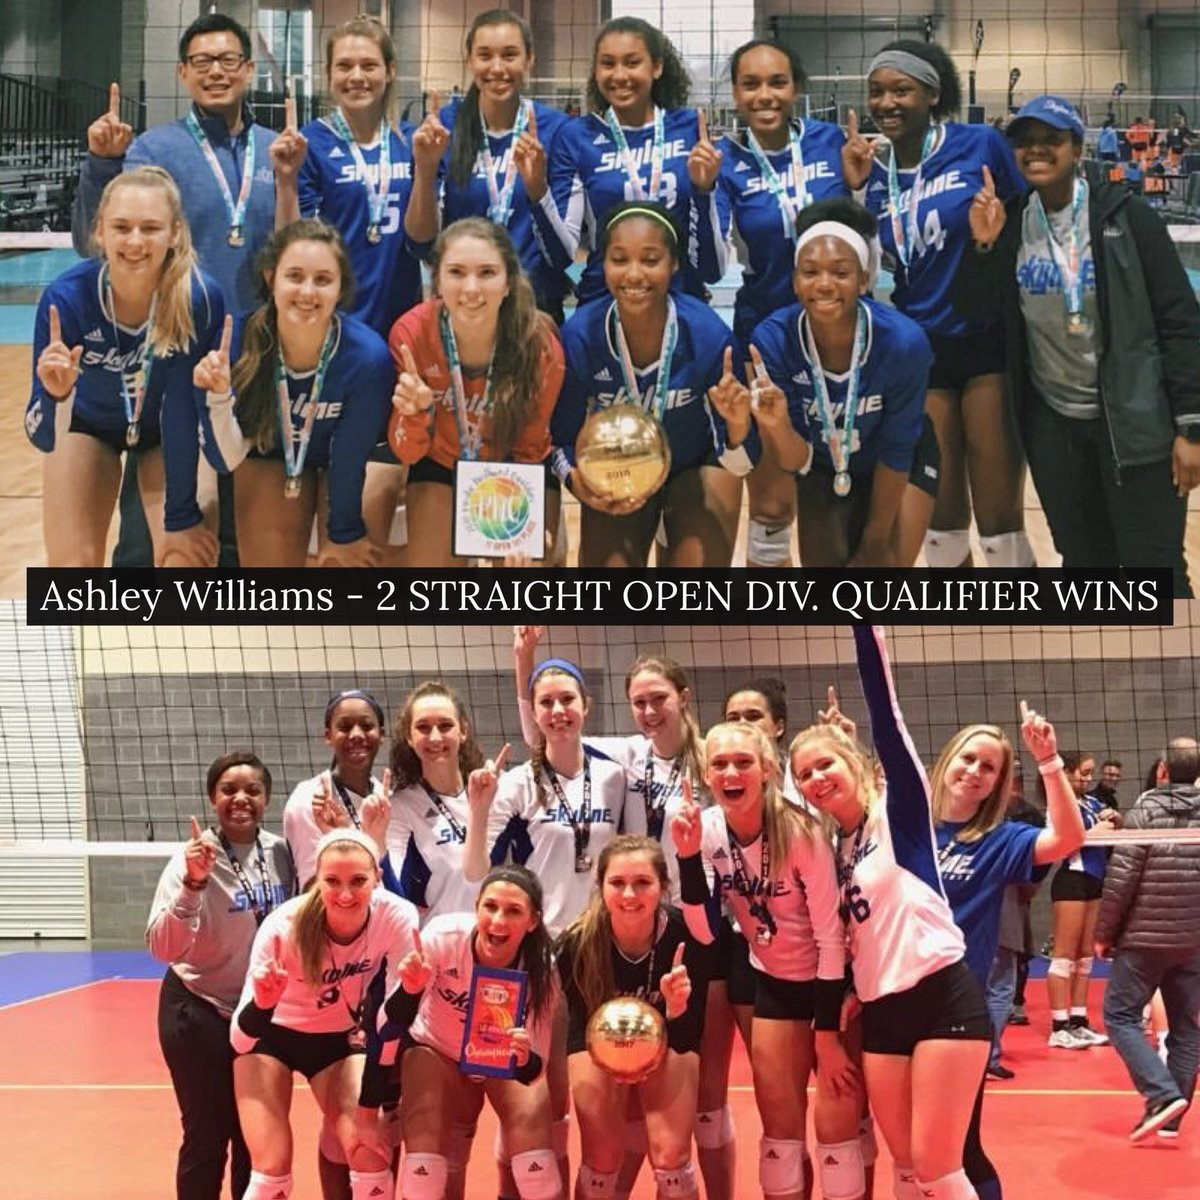 Houston Skyline On Twitter 2nd Straight Year For Coach Asst Director Ashley Williams To Win An Open Division National Qualifier Weareskyline Skylinefam Https T Co 0akx33jjjt